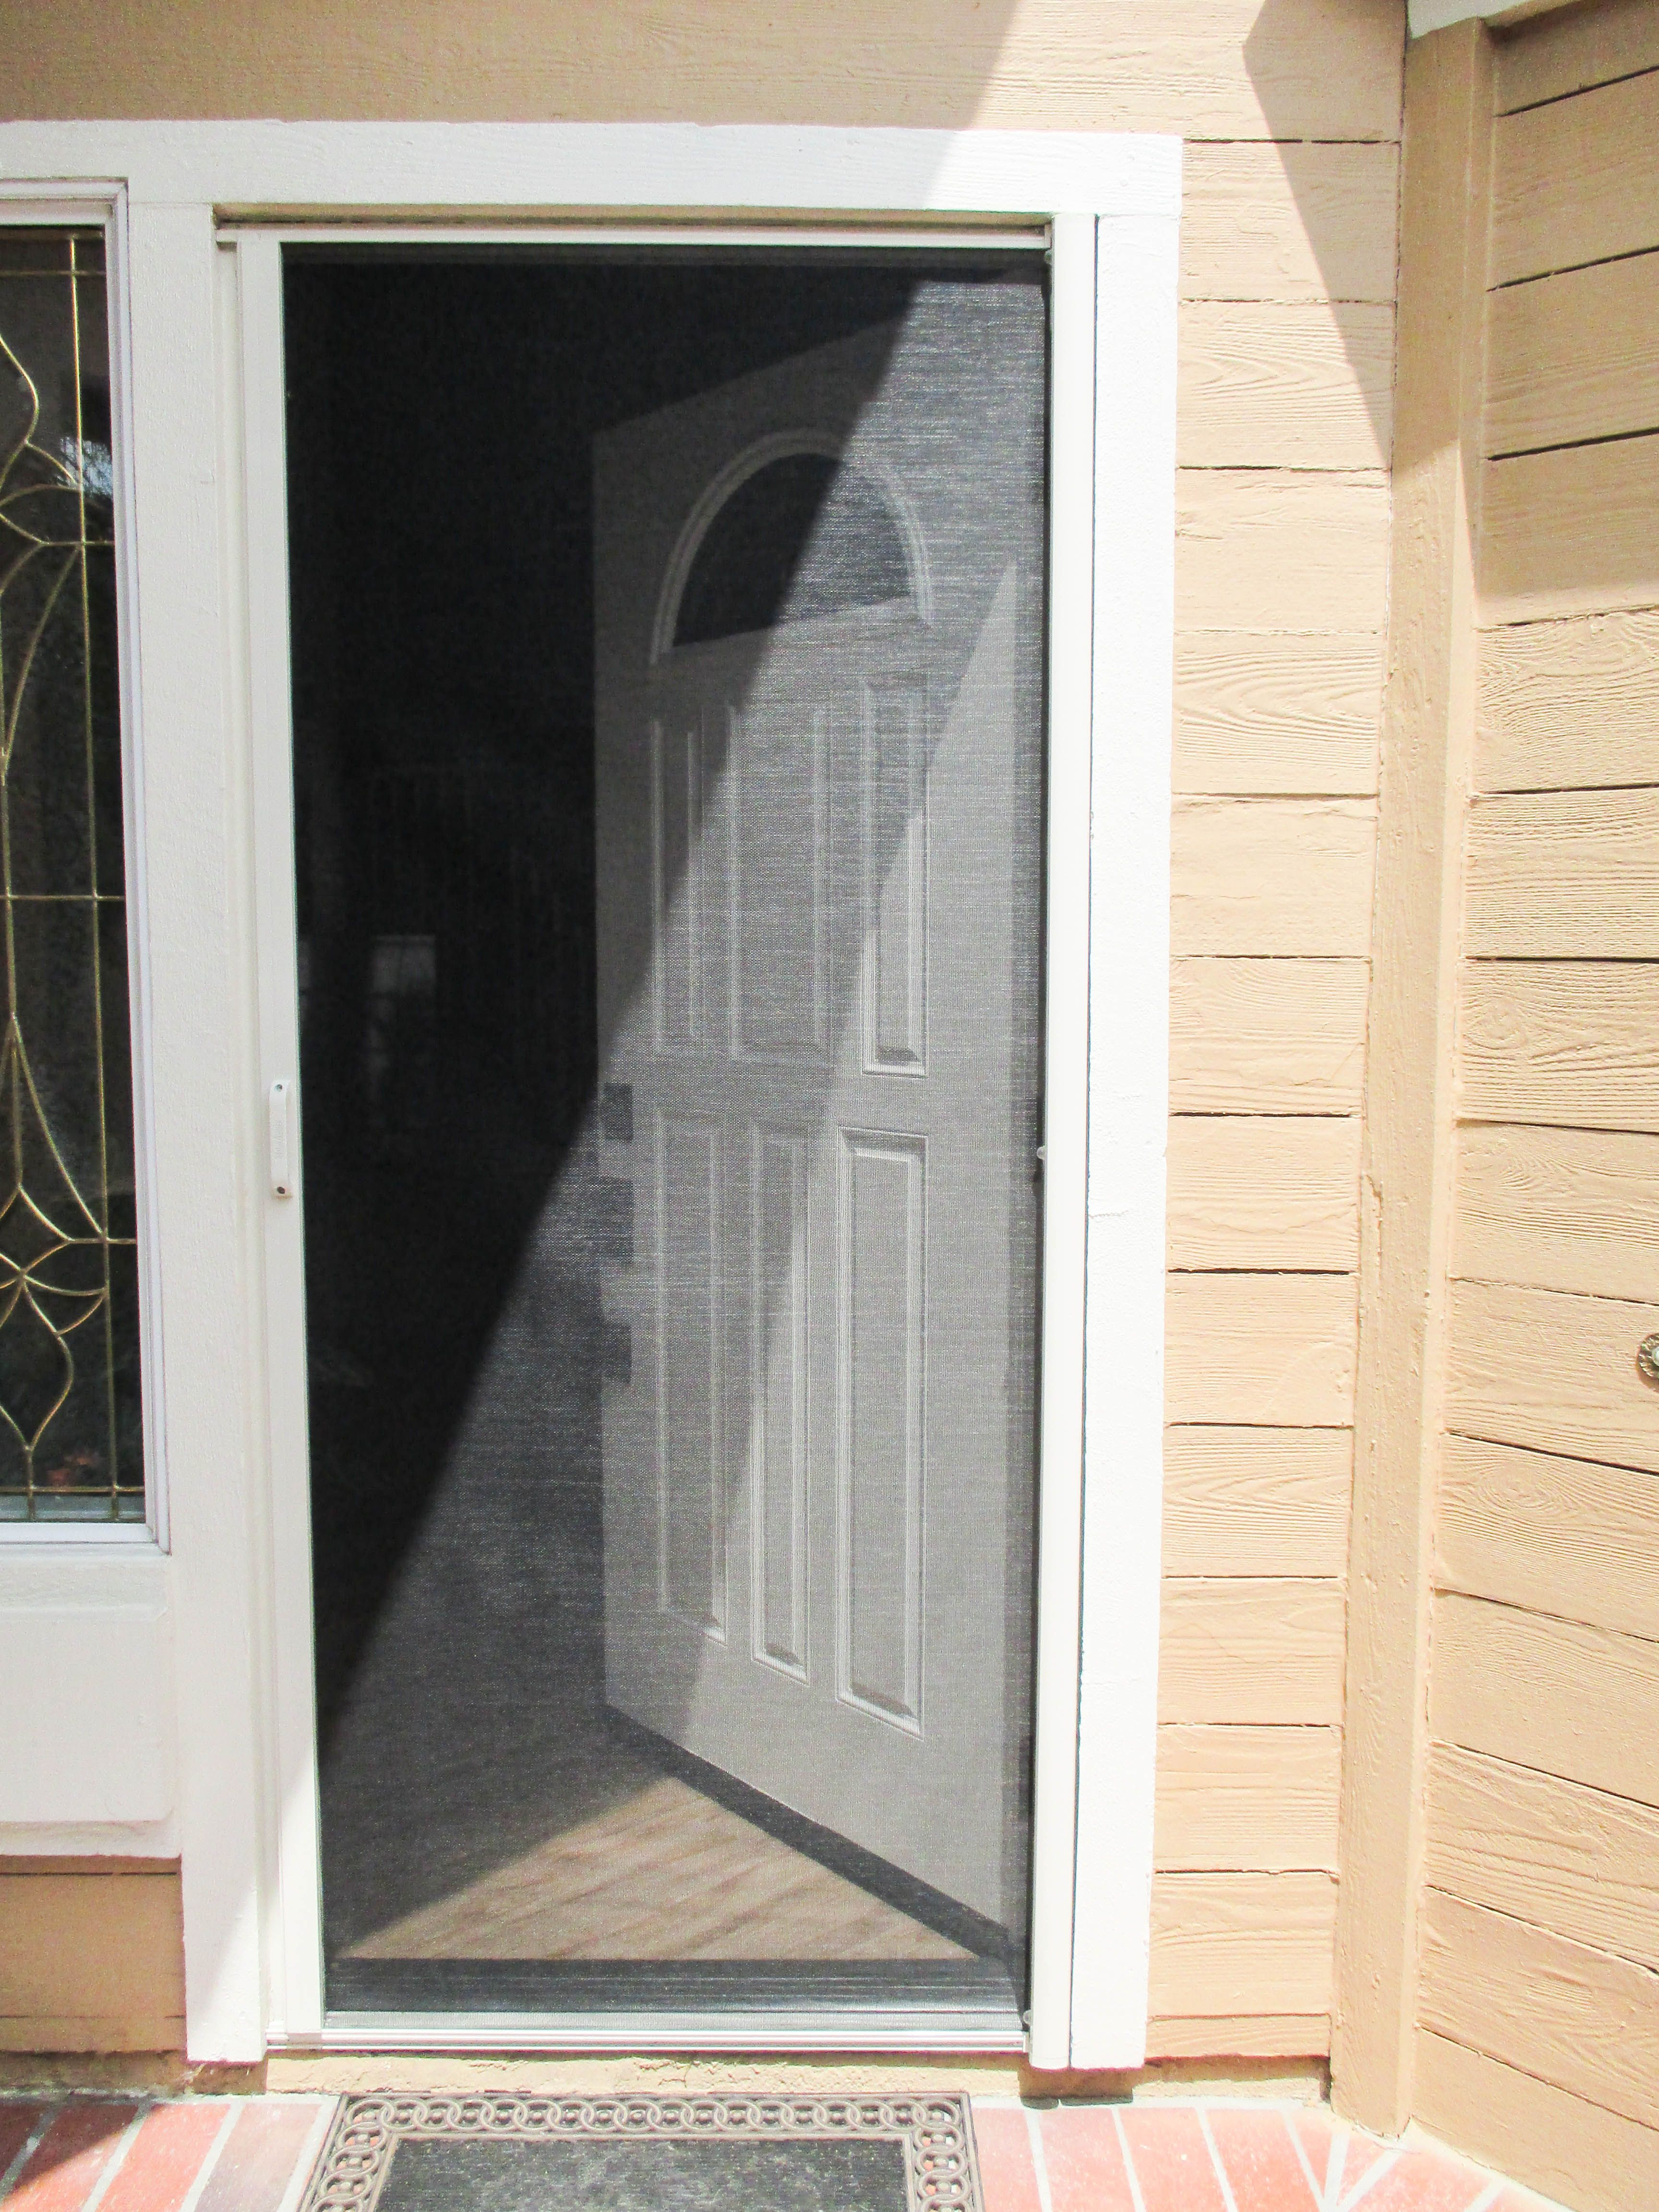 Our Team Installed This Stowaway Retractable Screen Door With A